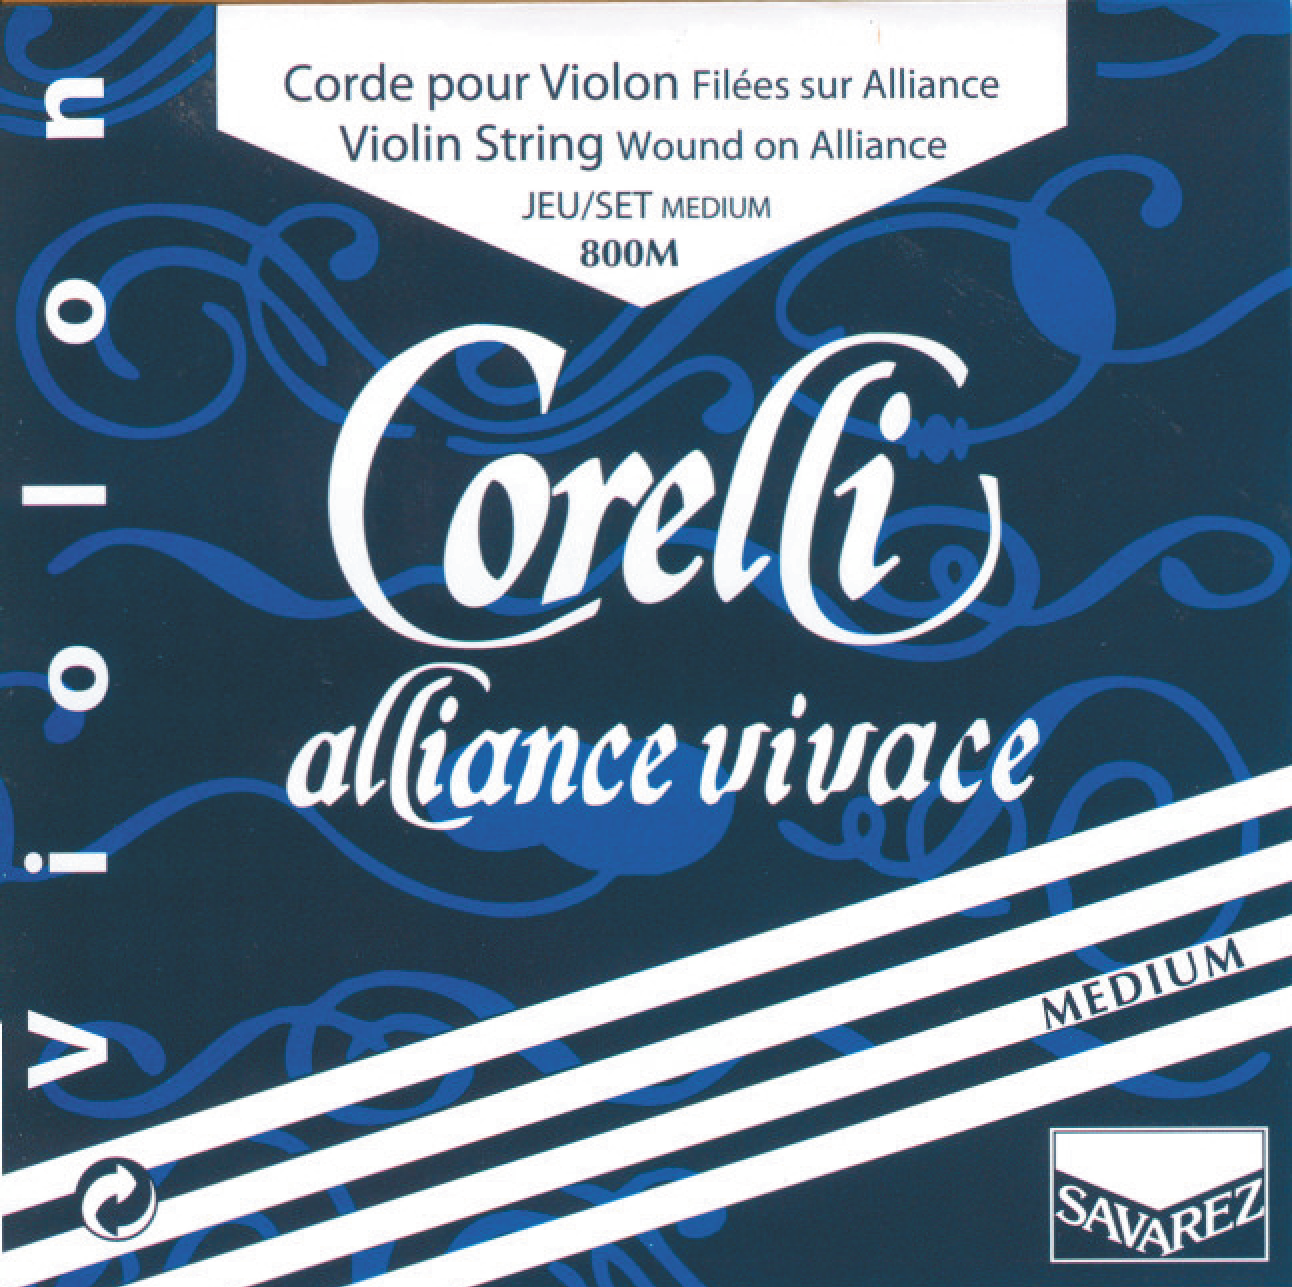 CORELLI ALLIANCE VIVACE MEDIUM 800M VIOLON